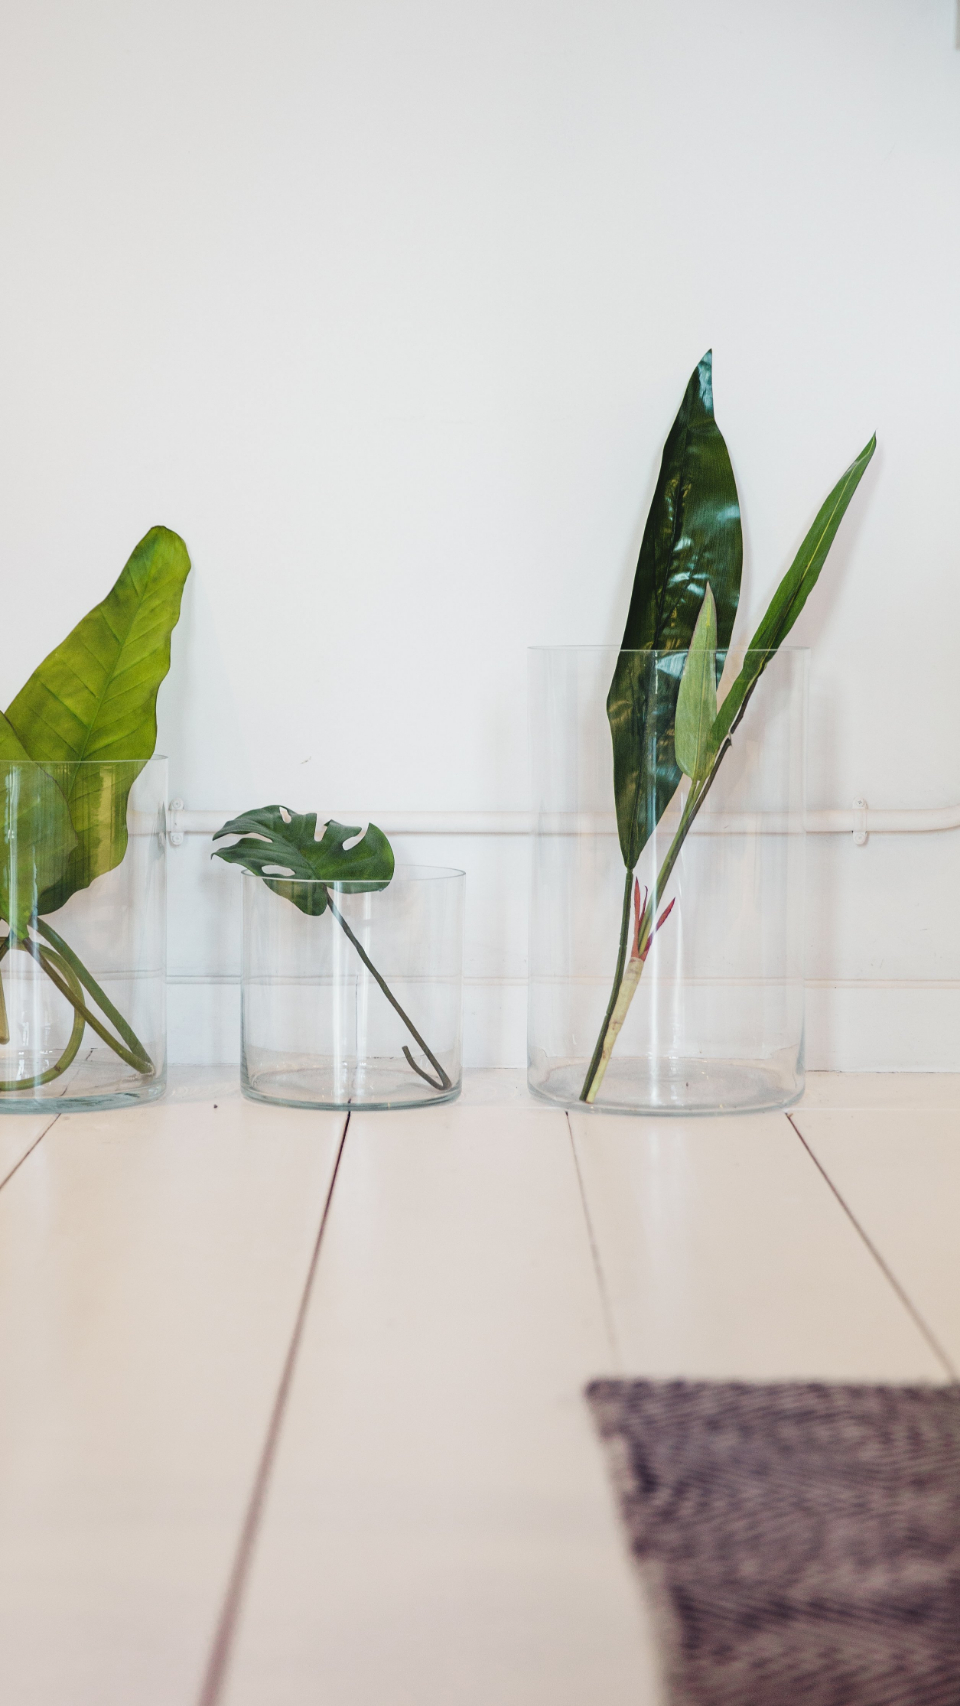 simple plants vase indoors decor decoration minimal organic natural home design botanical lush stylish